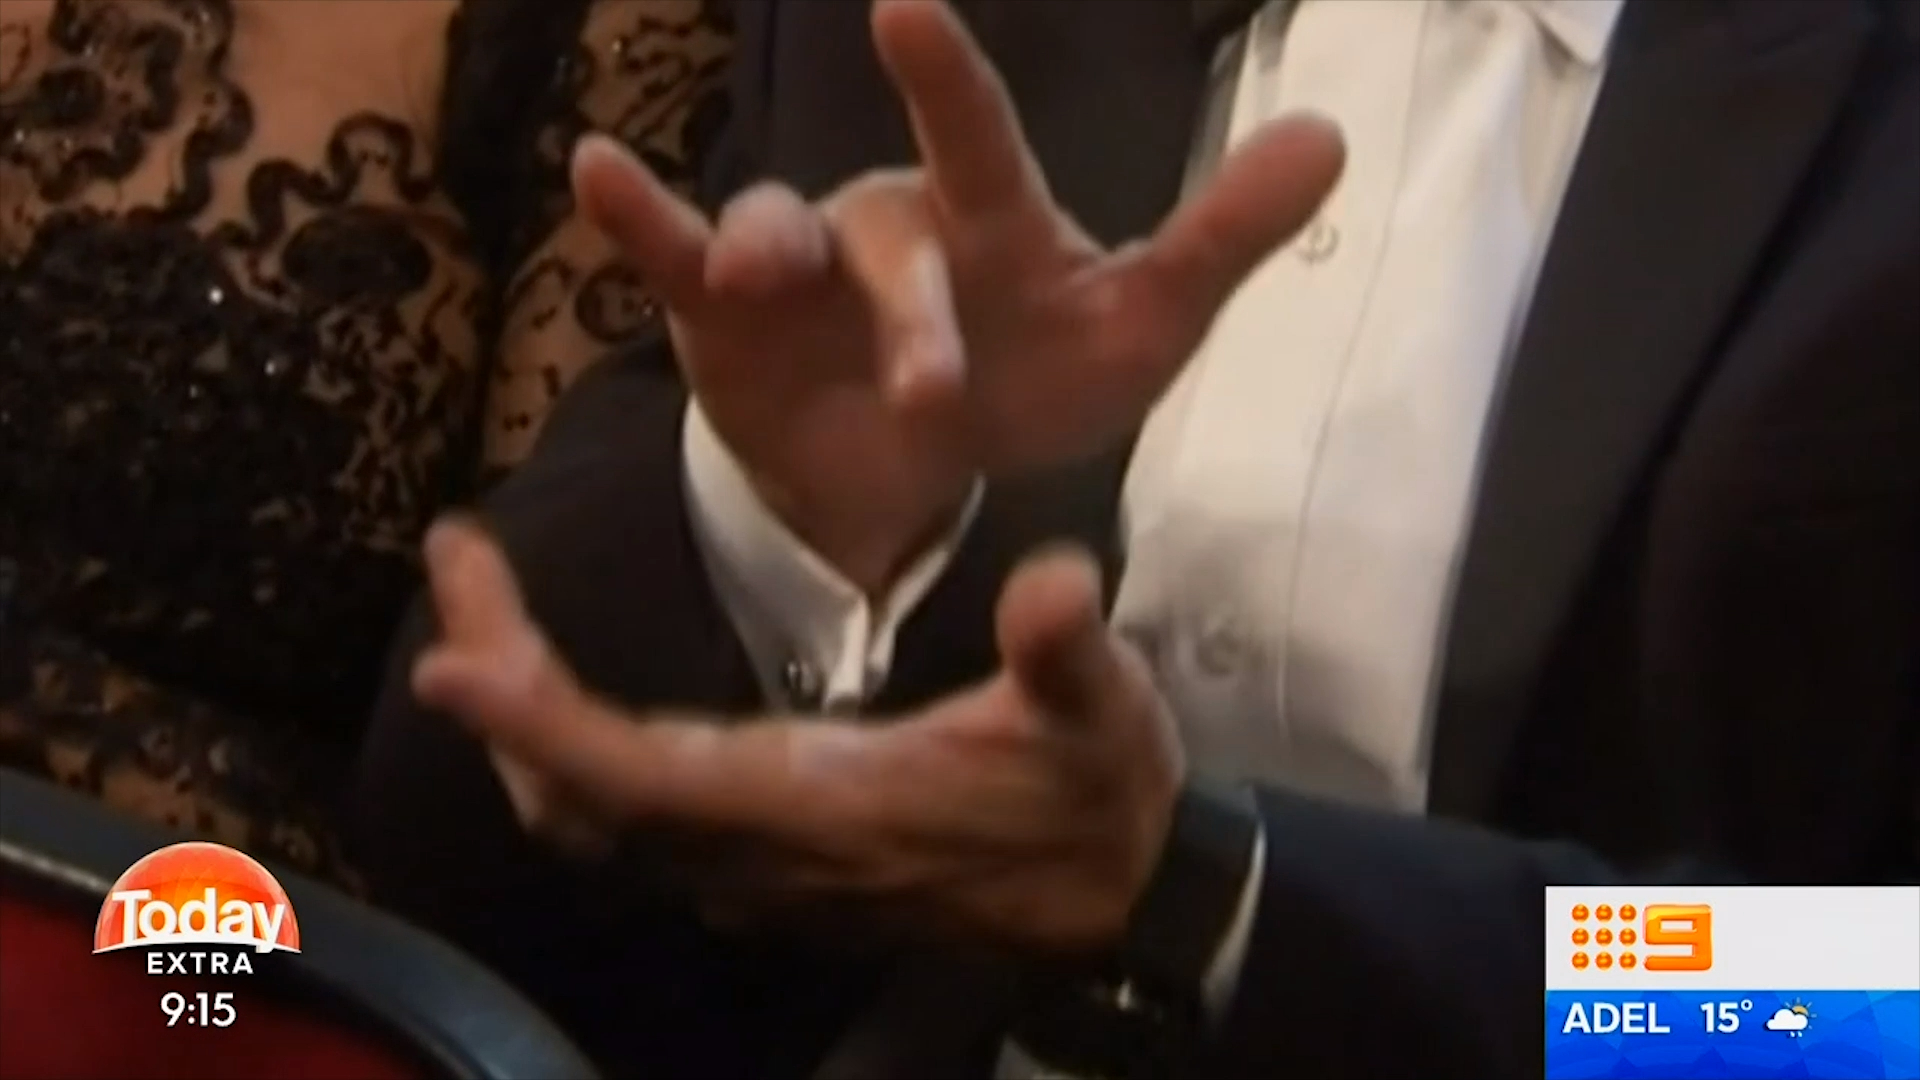 Antonio Banderas' strange clapping at the Emmy Awards goes viral